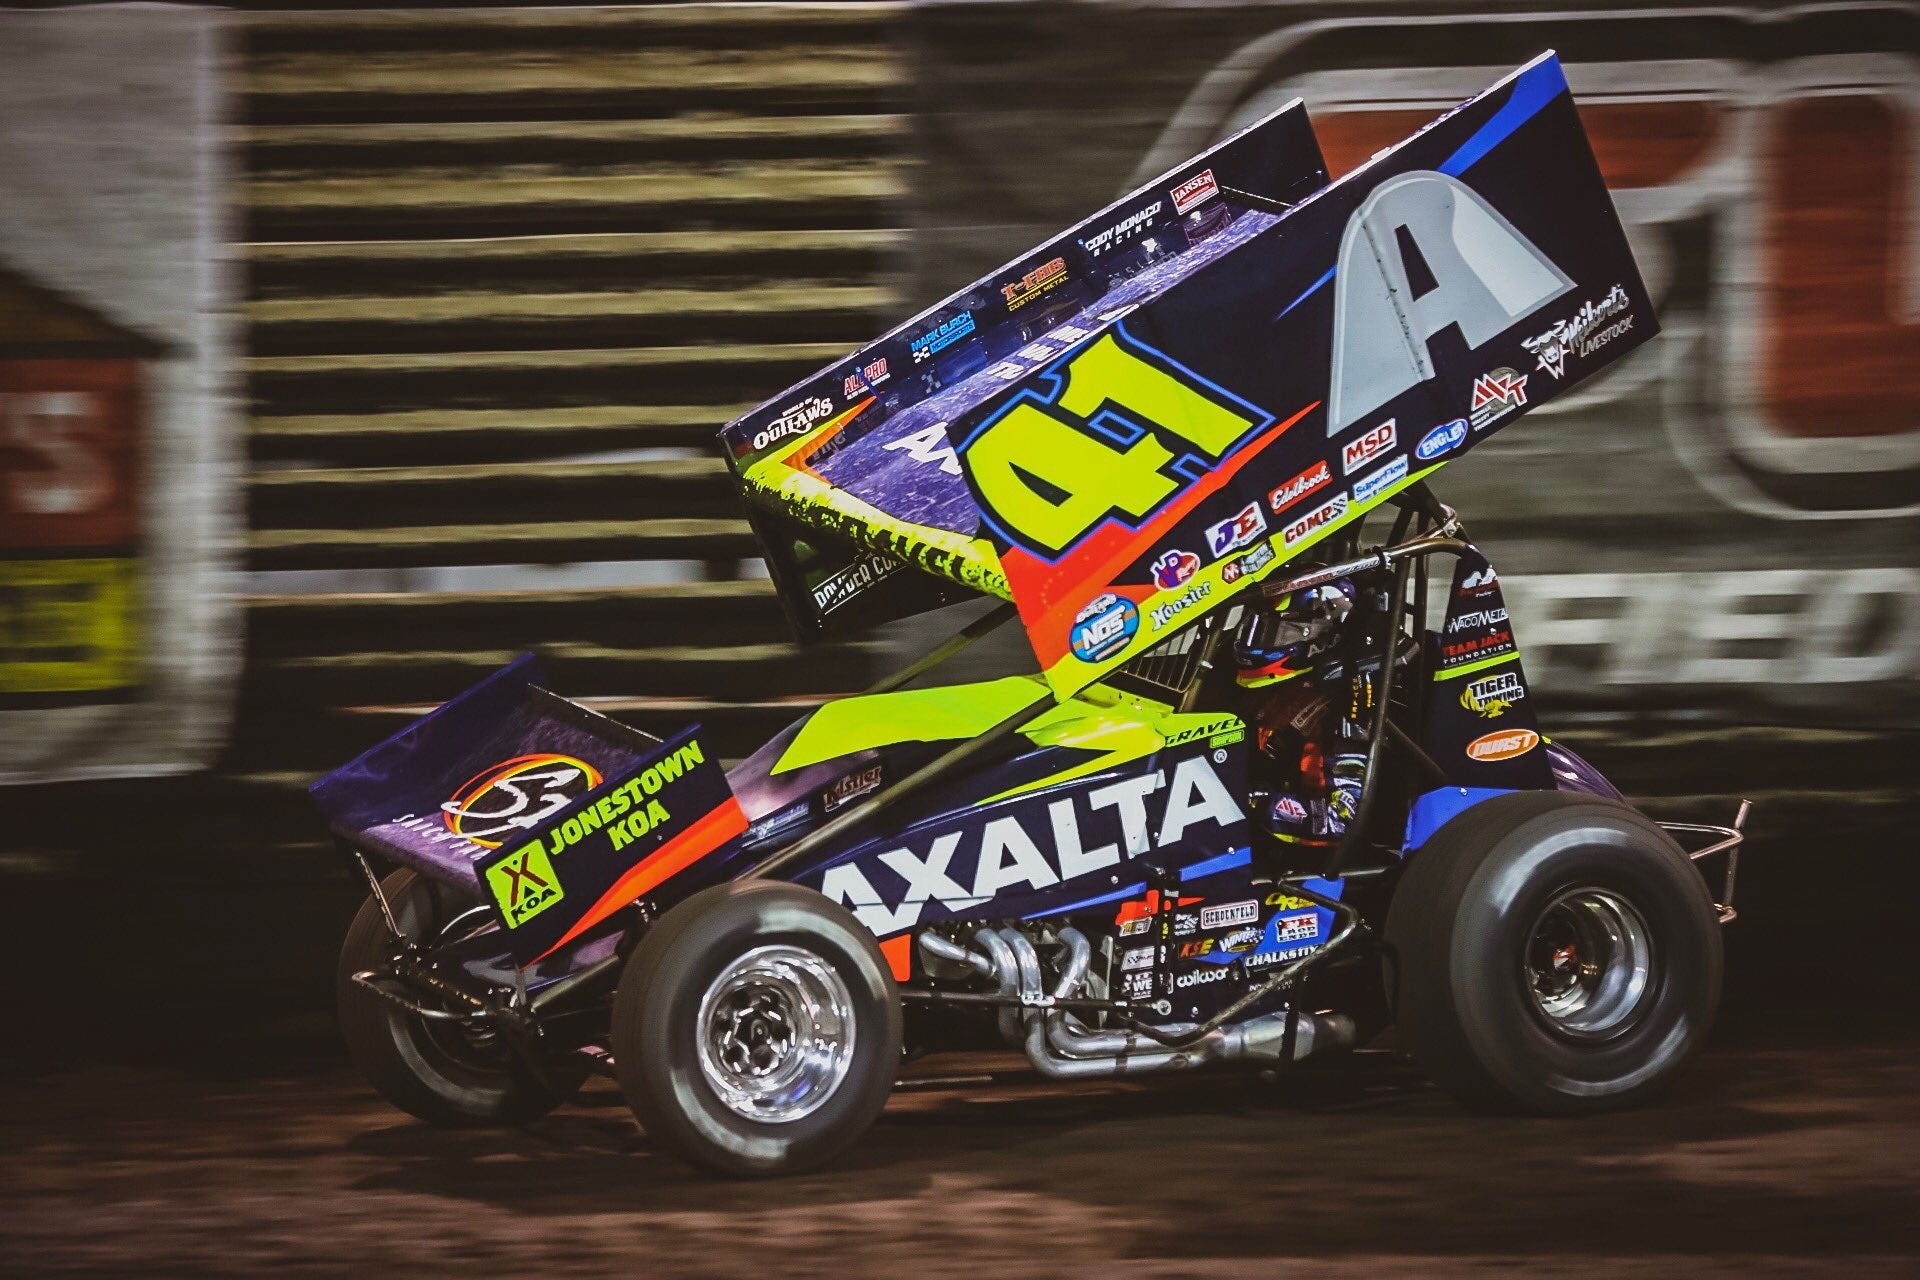 World of Outlaws Driver David Gravel Gets Opportunity of a Lifetime - Jeff Gordon